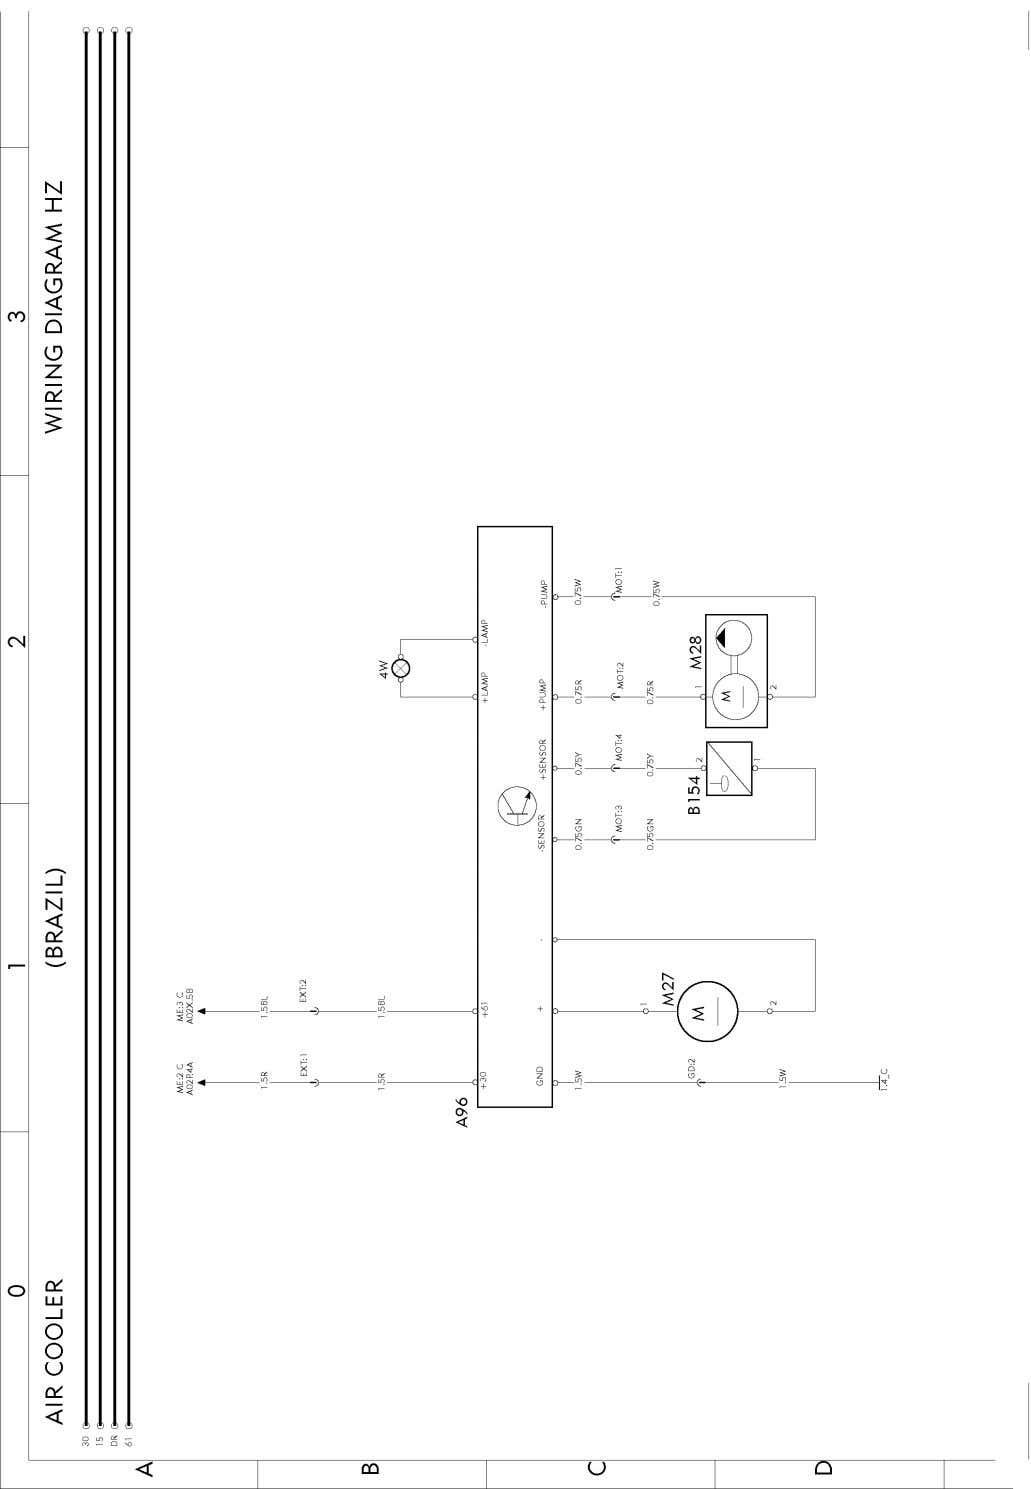 T3017684 Wiring diagram Page 85 (298)